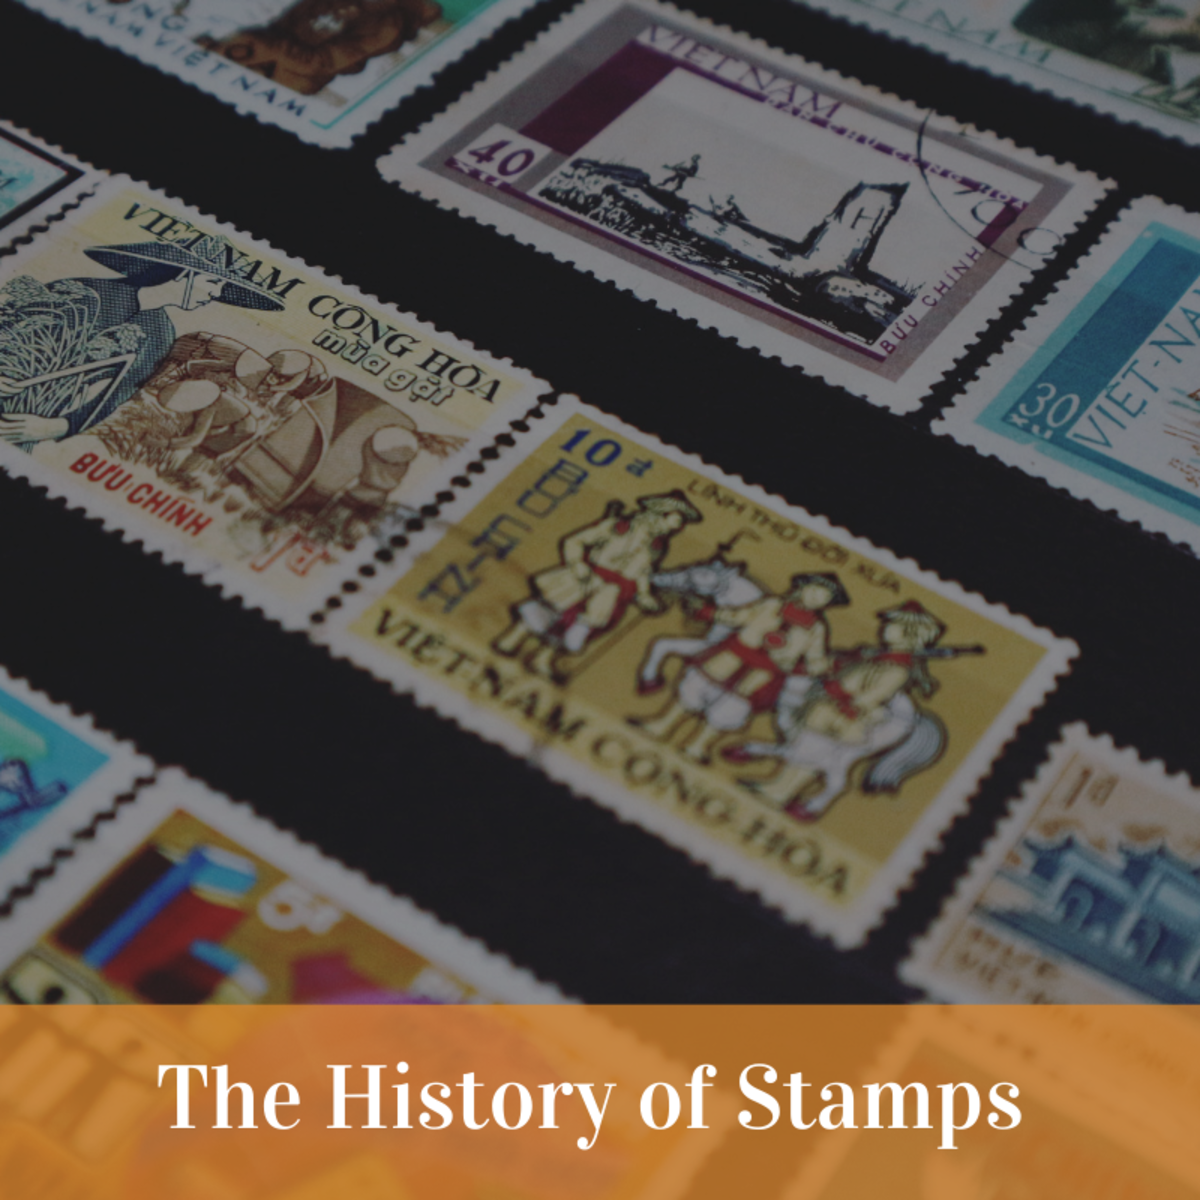 stamp-collecting-philately-worlds-greatest-hobby